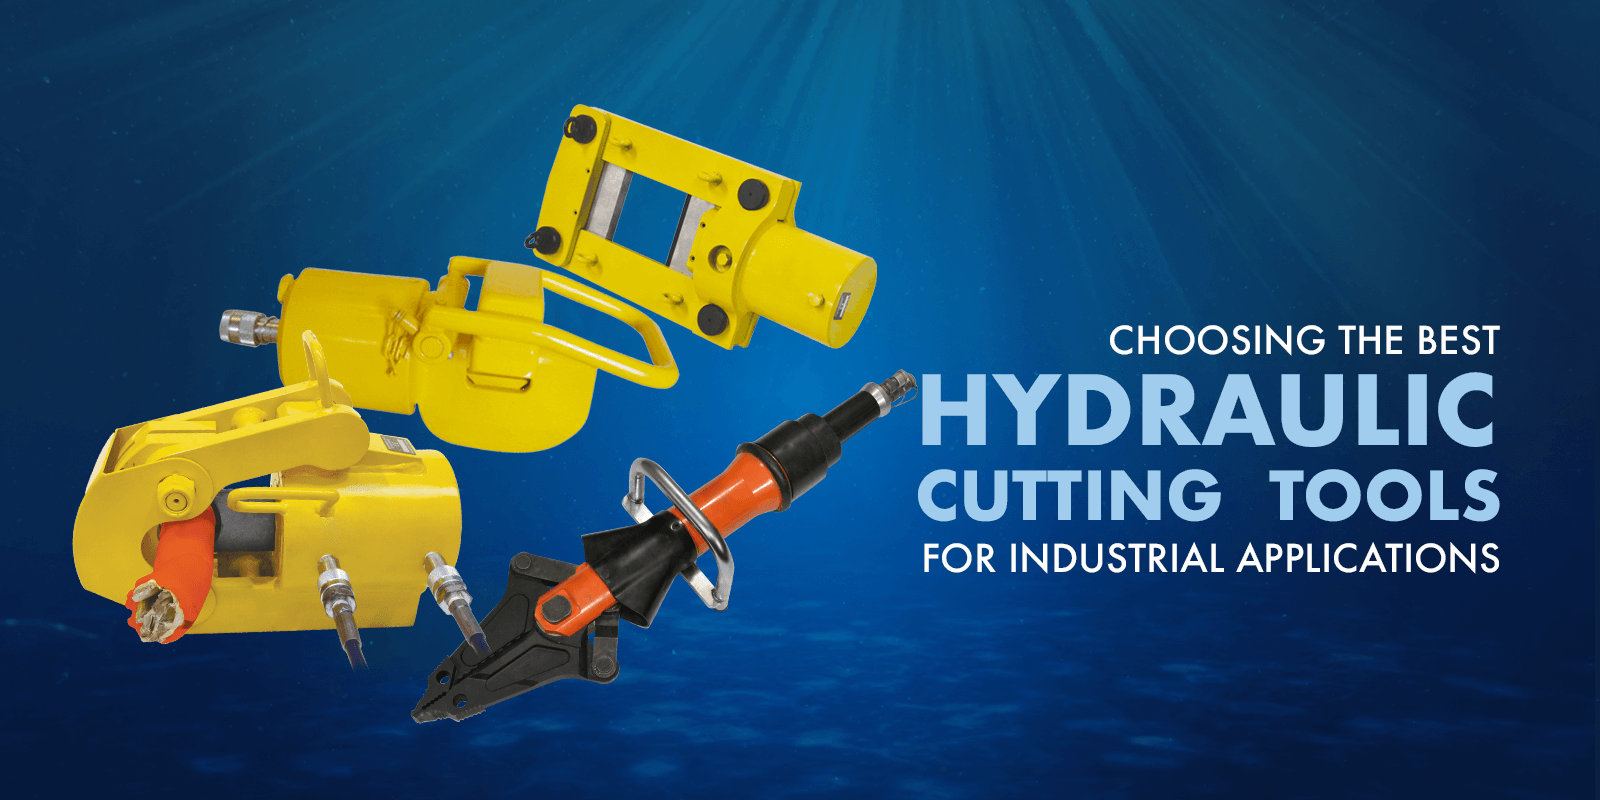 Choosing the Best Hydraulic Cutting Tools for Industrial Applications